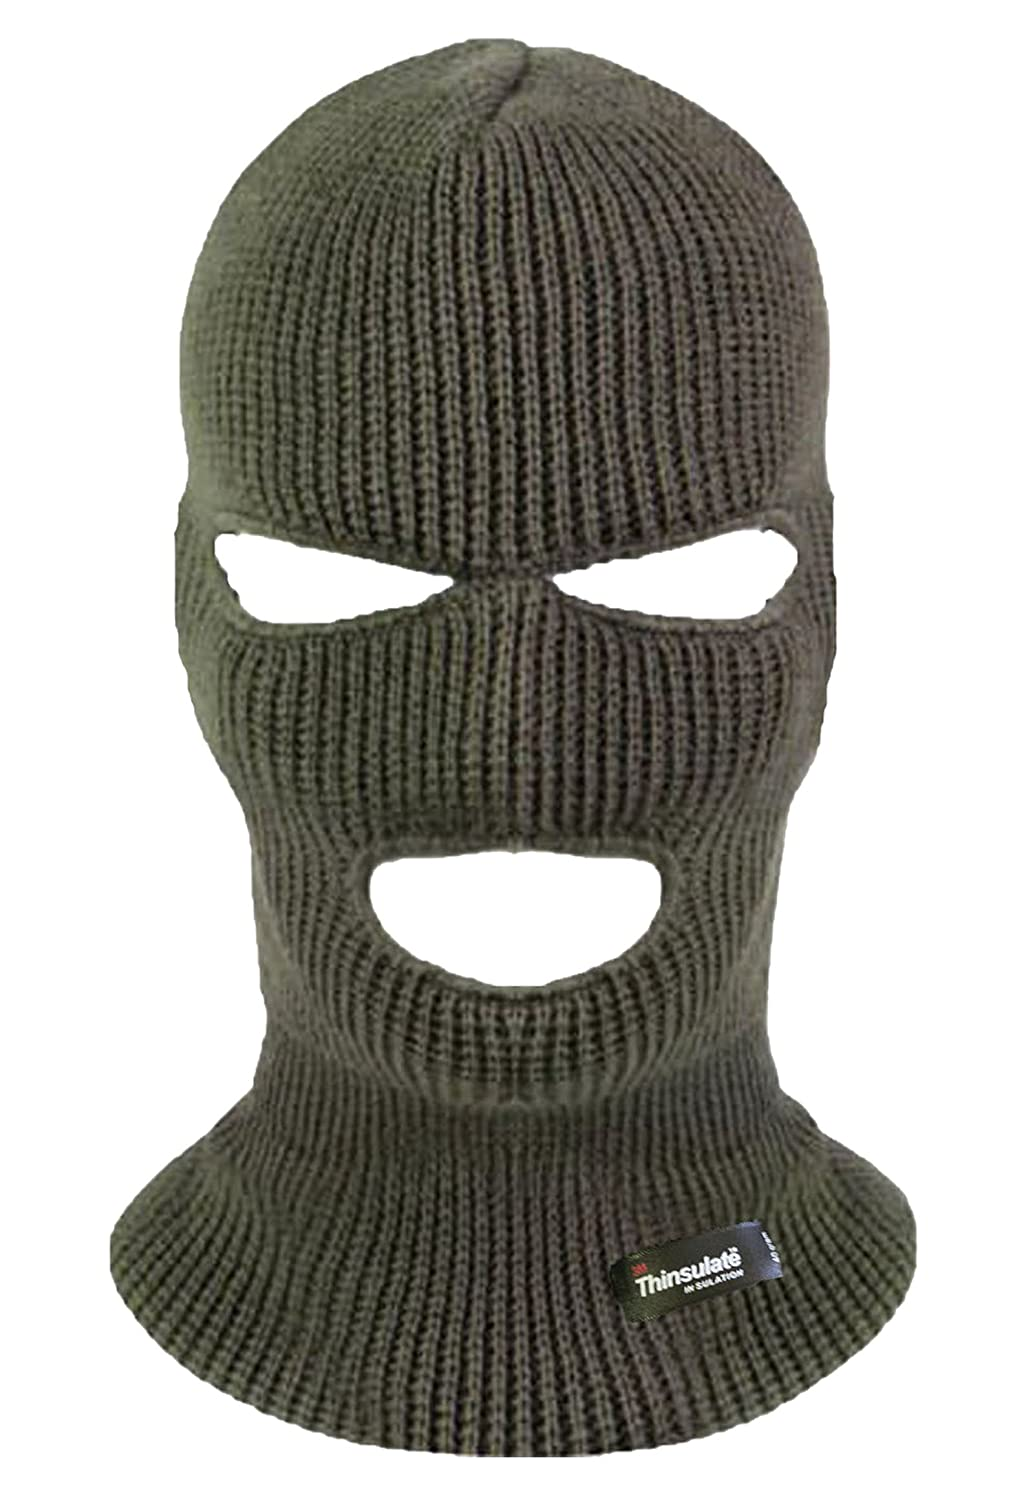 Highlander 3 Hole Thinsulate Balaclava HAT153-BK